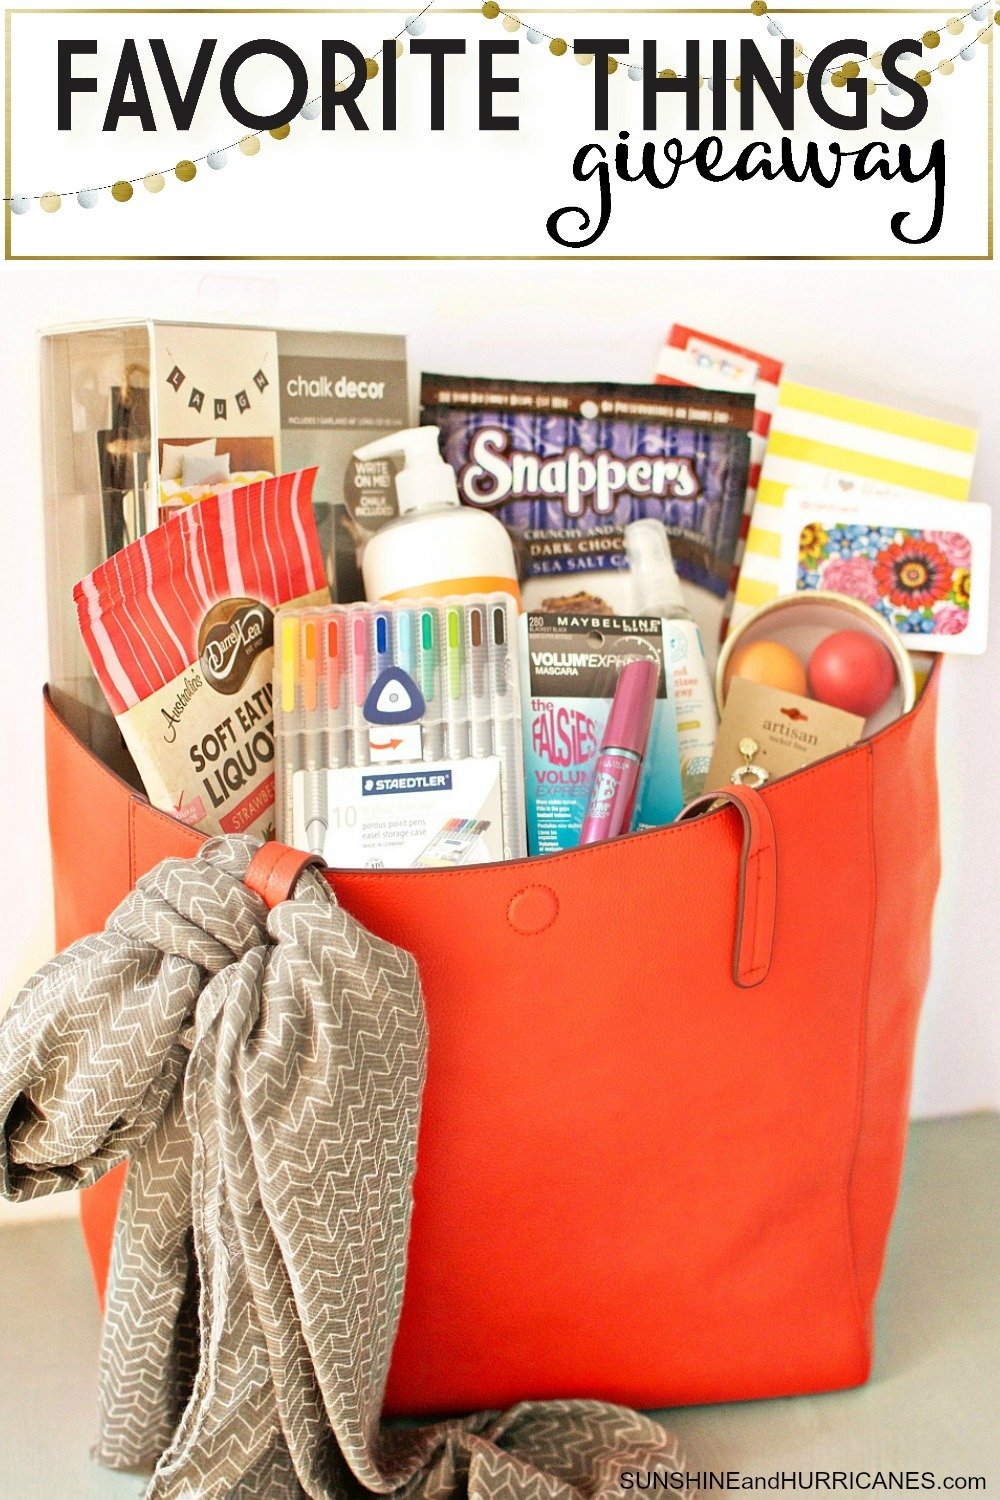 The holidays are coming and wouldn't it be fantastic to win this target inspired bag stocked with all sorts of goodies either for yourself or to use as gifts for other people? Enter our Favorite Things Giveaway for your chance to win this and other equally fantastic prizes from a whole group of bloggers. SunshineandHurricanes.com